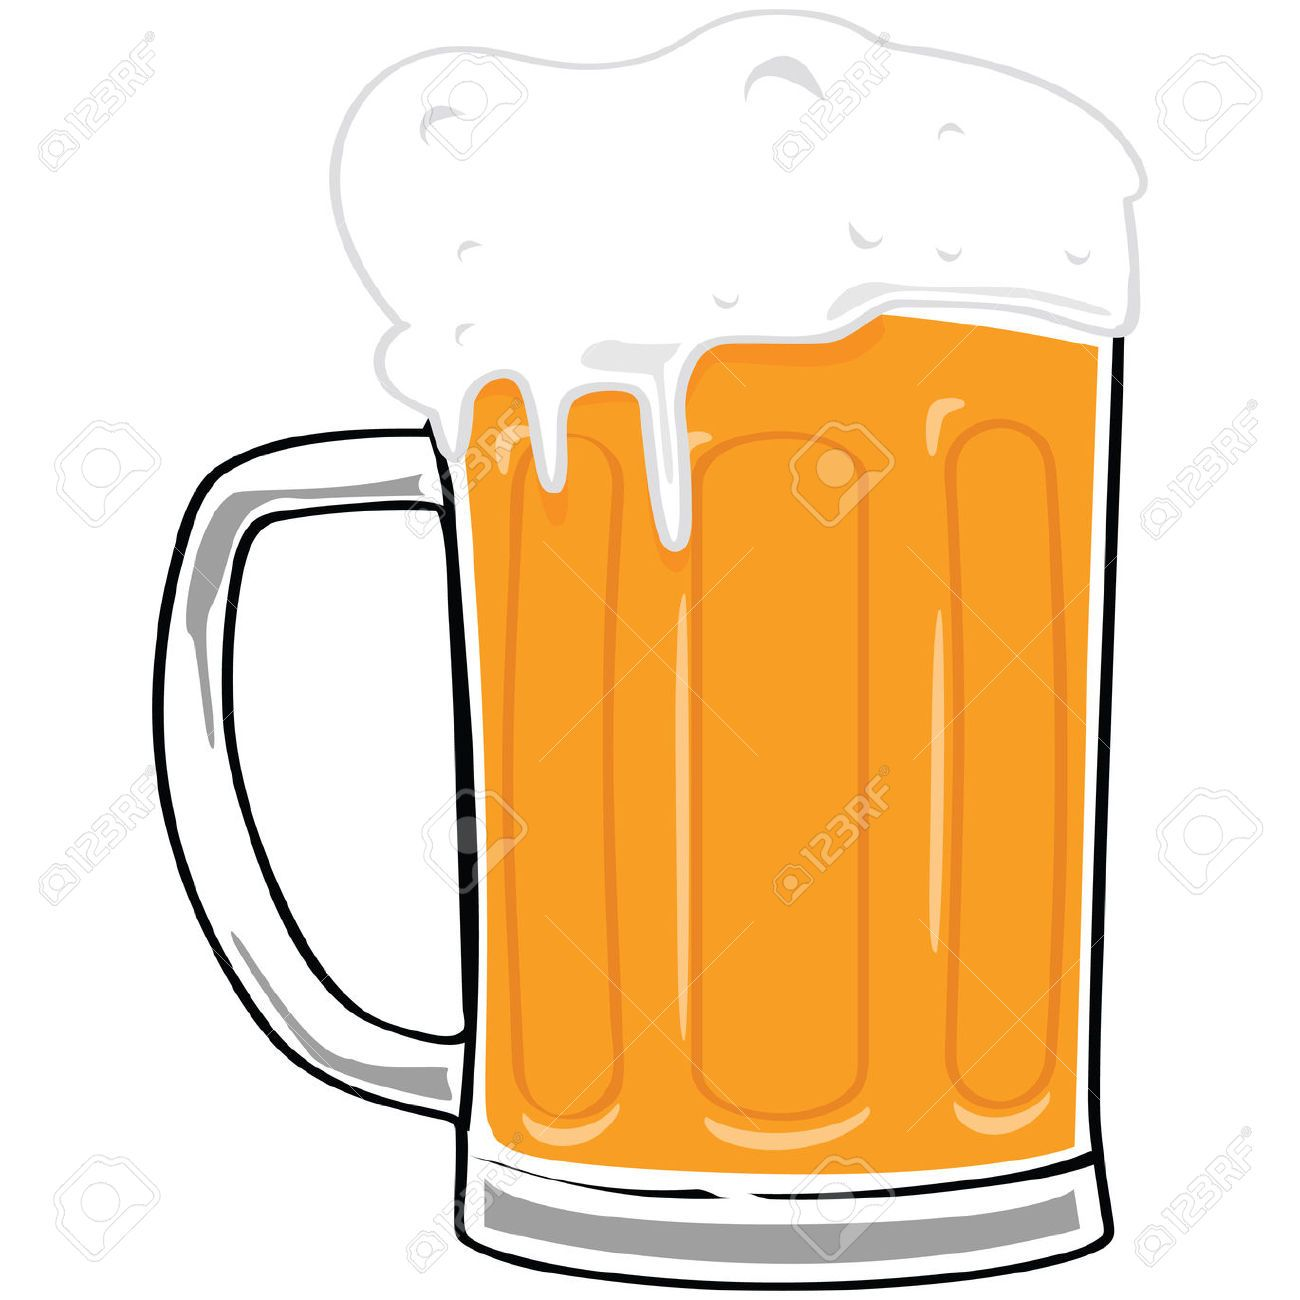 Beer stein clipart free clipart transparent Beer Mug Stock Photos, Pictures, Royalty Free Beer Mug Images And ... clipart transparent